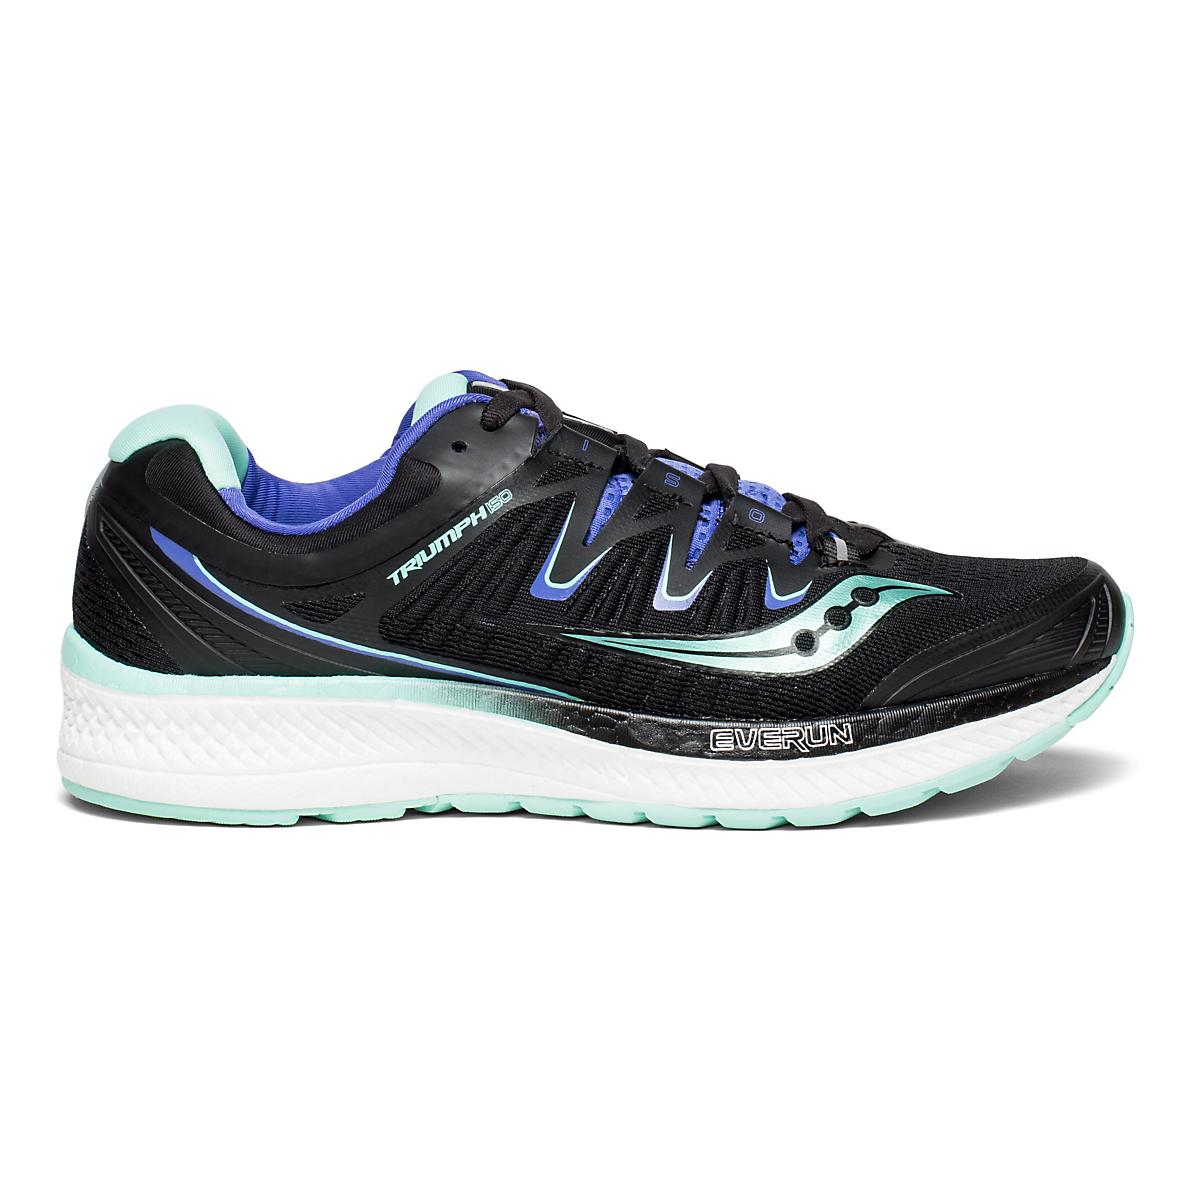 9a7b4c7ff6d4 Womens Saucony Triumph ISO 4 Running Shoe at Road Runner Sports